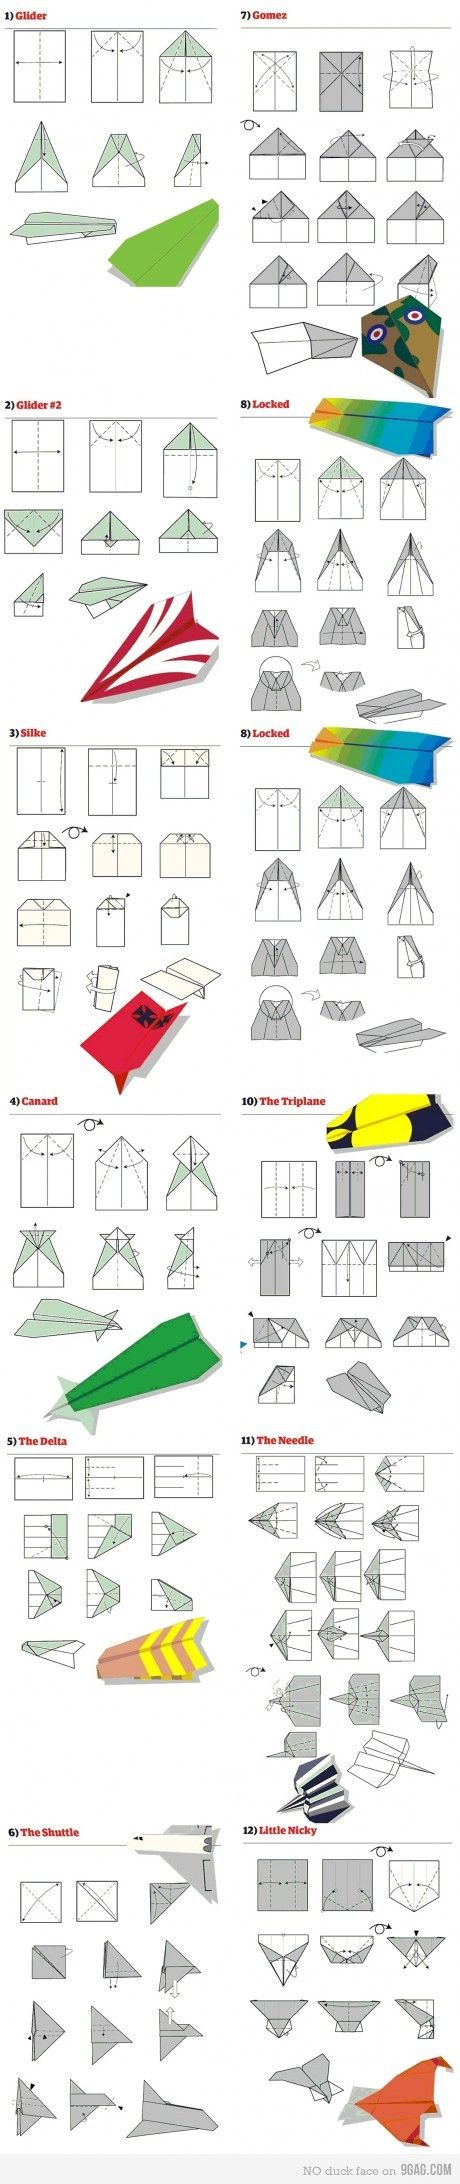 best images about paper airplanes make paper how to make awesome paper airplanes